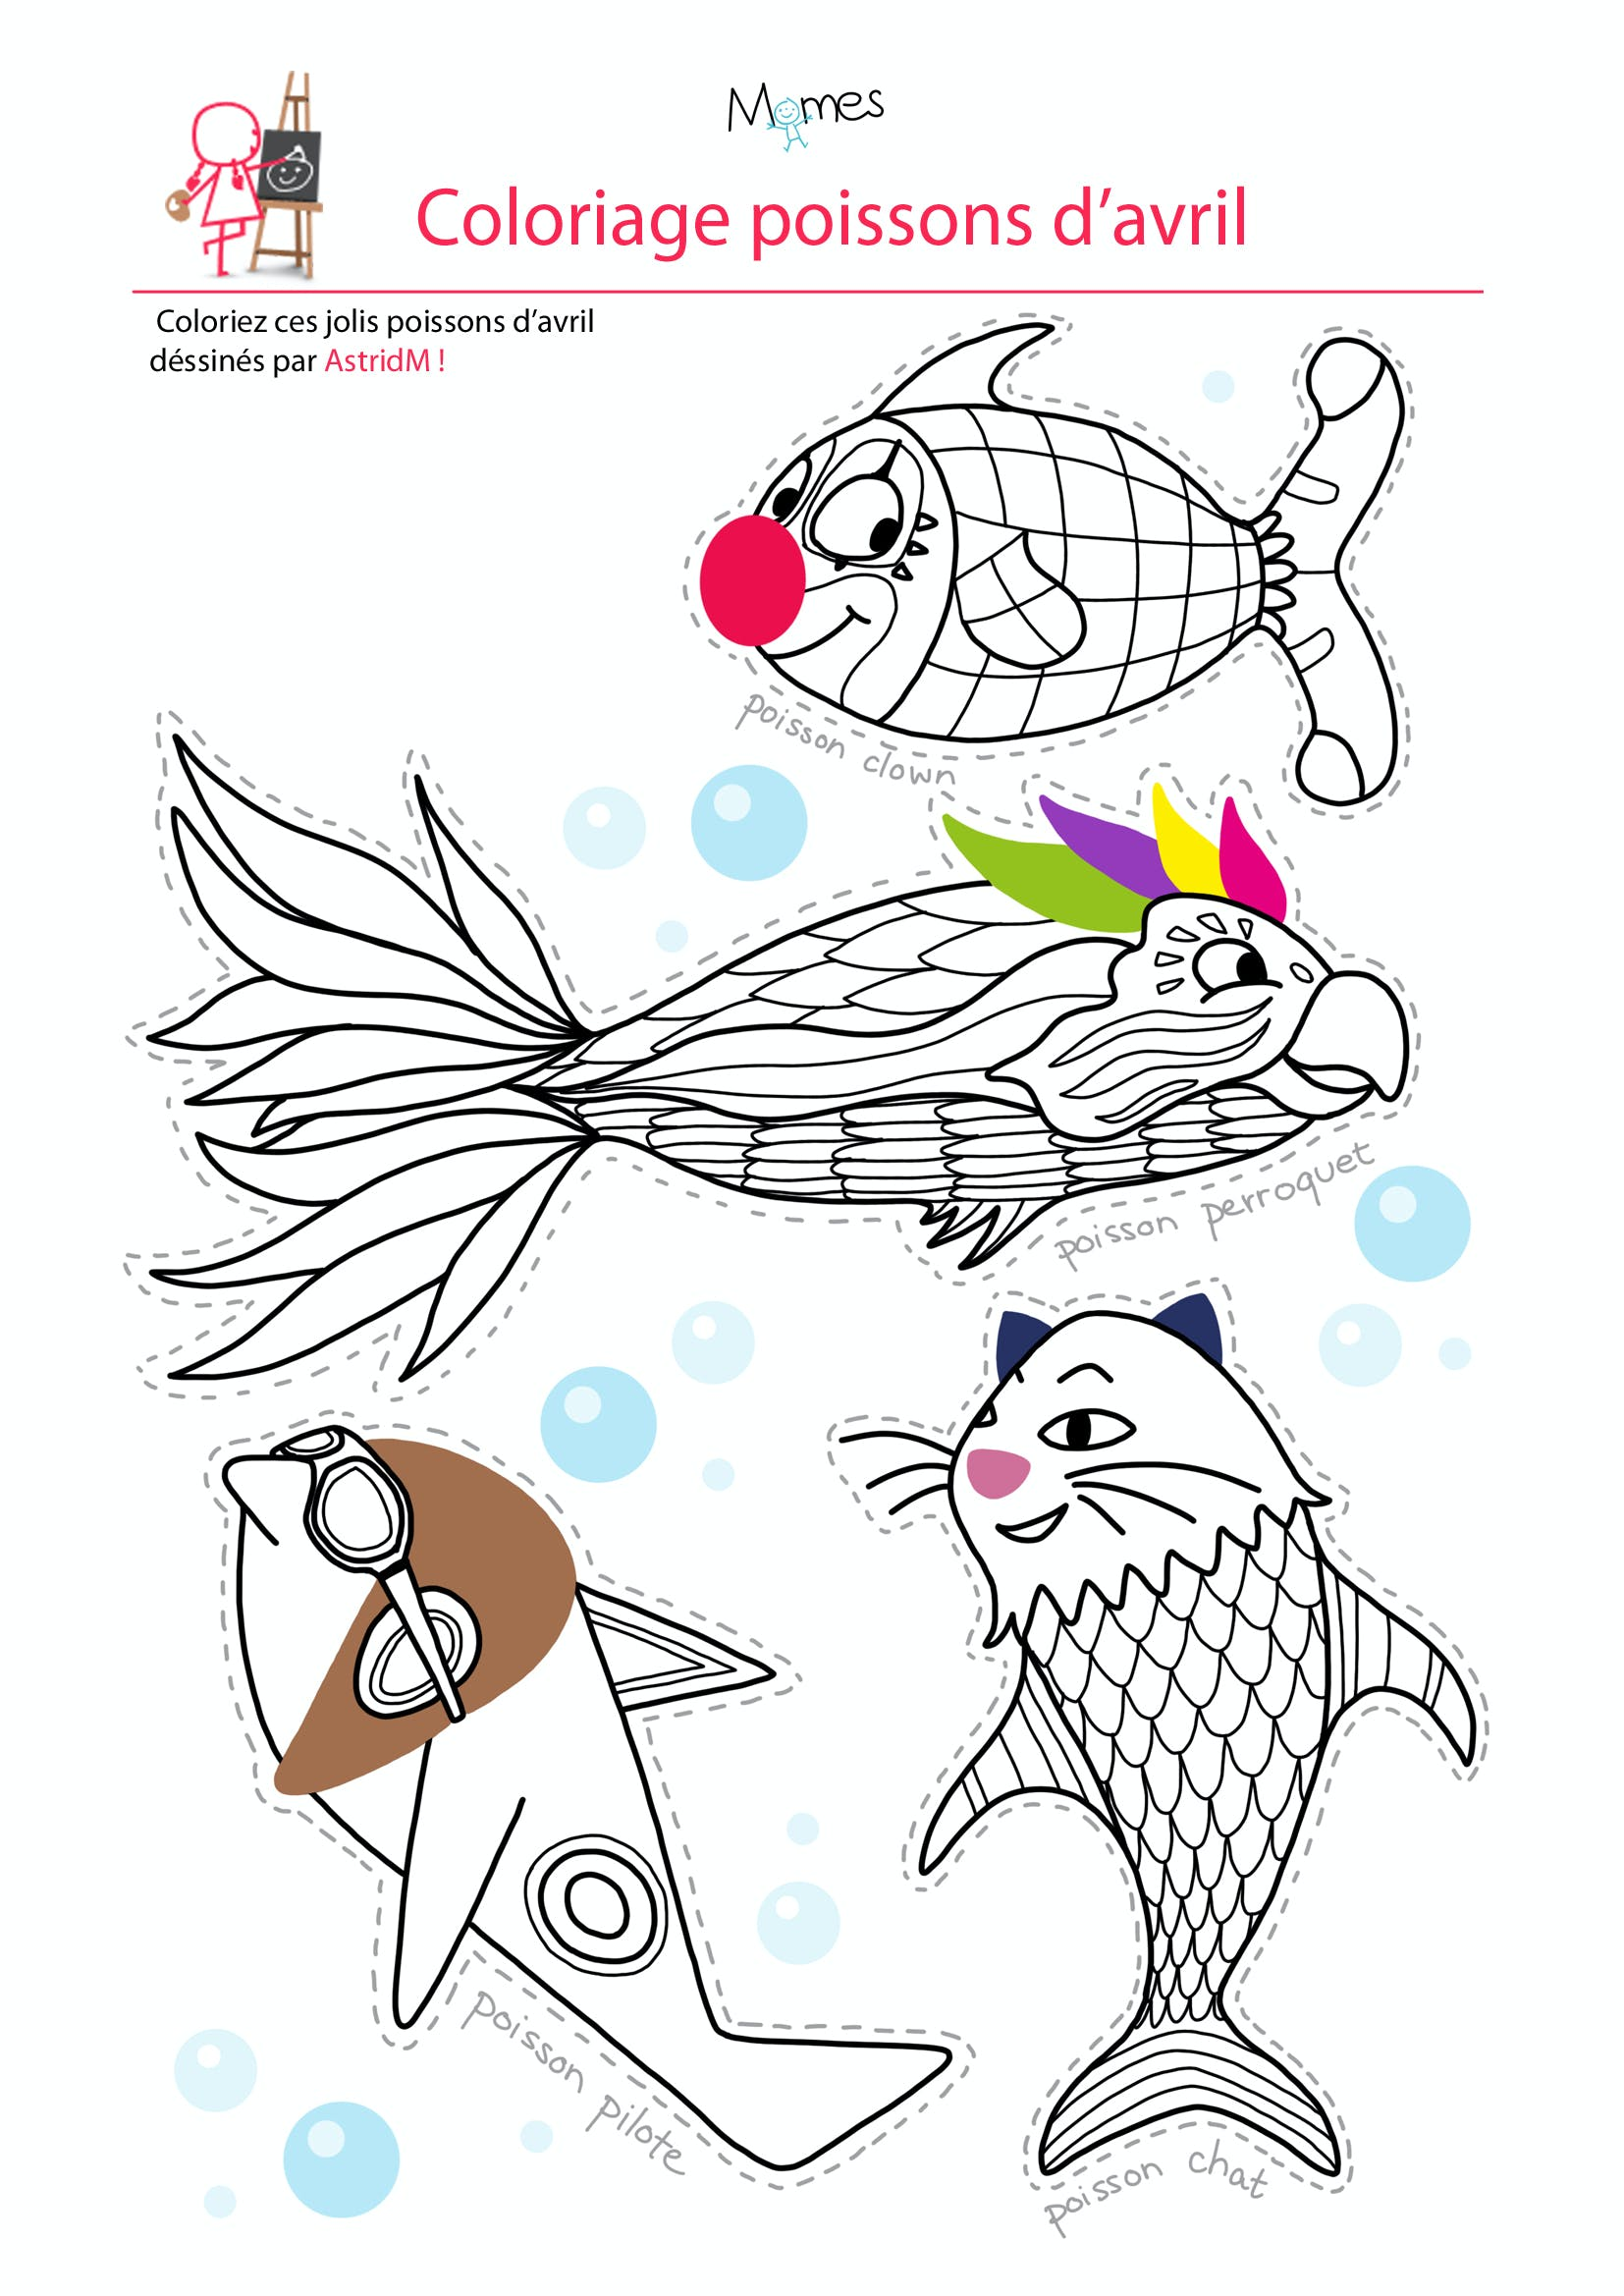 Coloriage 4 poissons d 39 avril - Dessin de poisson d avril ...